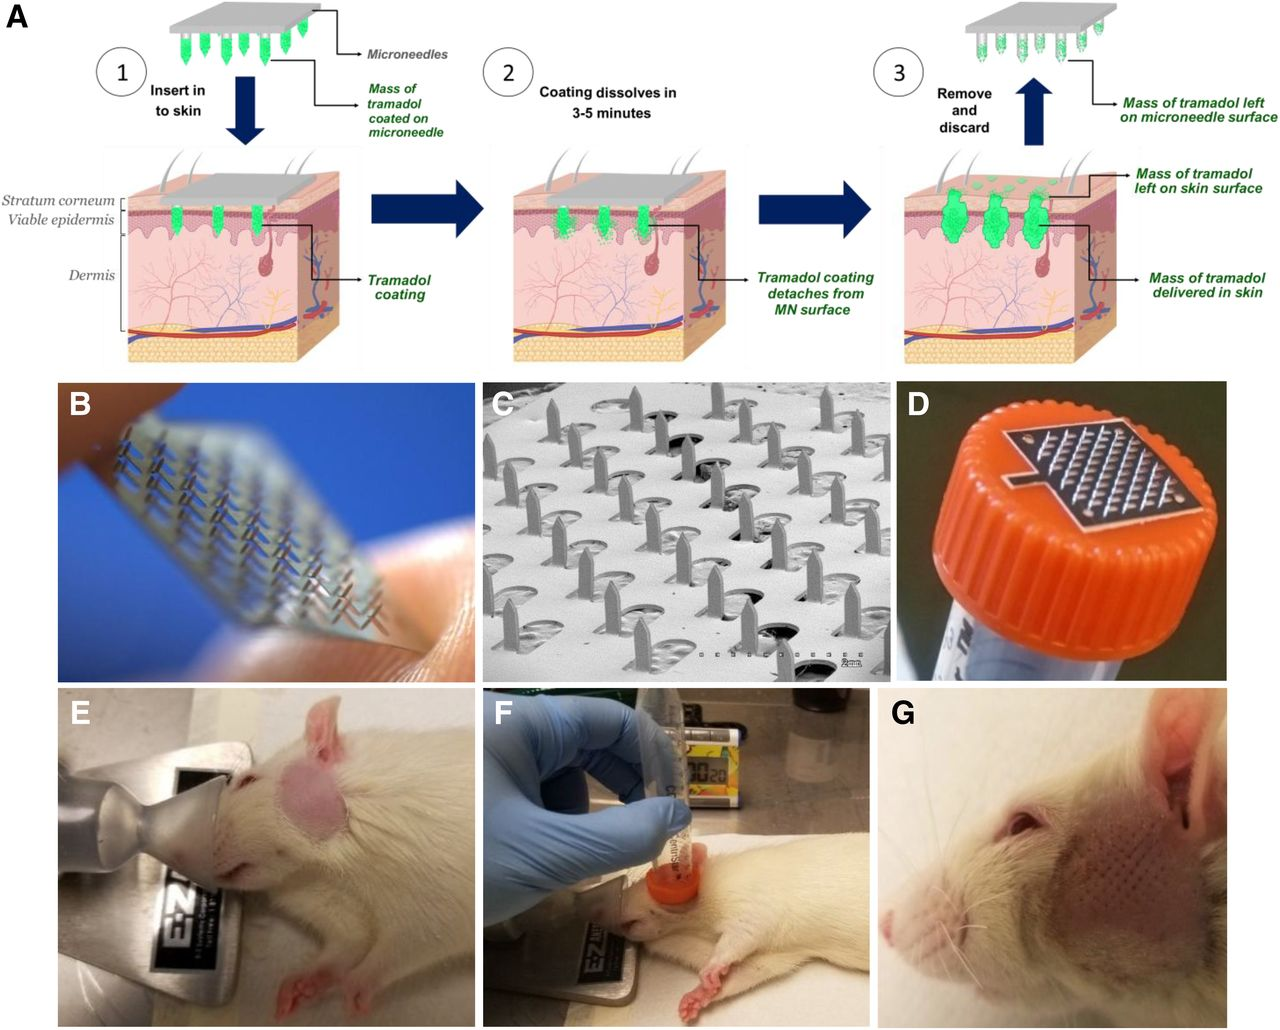 Microneedles Coated with Tramadol Exhibit Antinociceptive